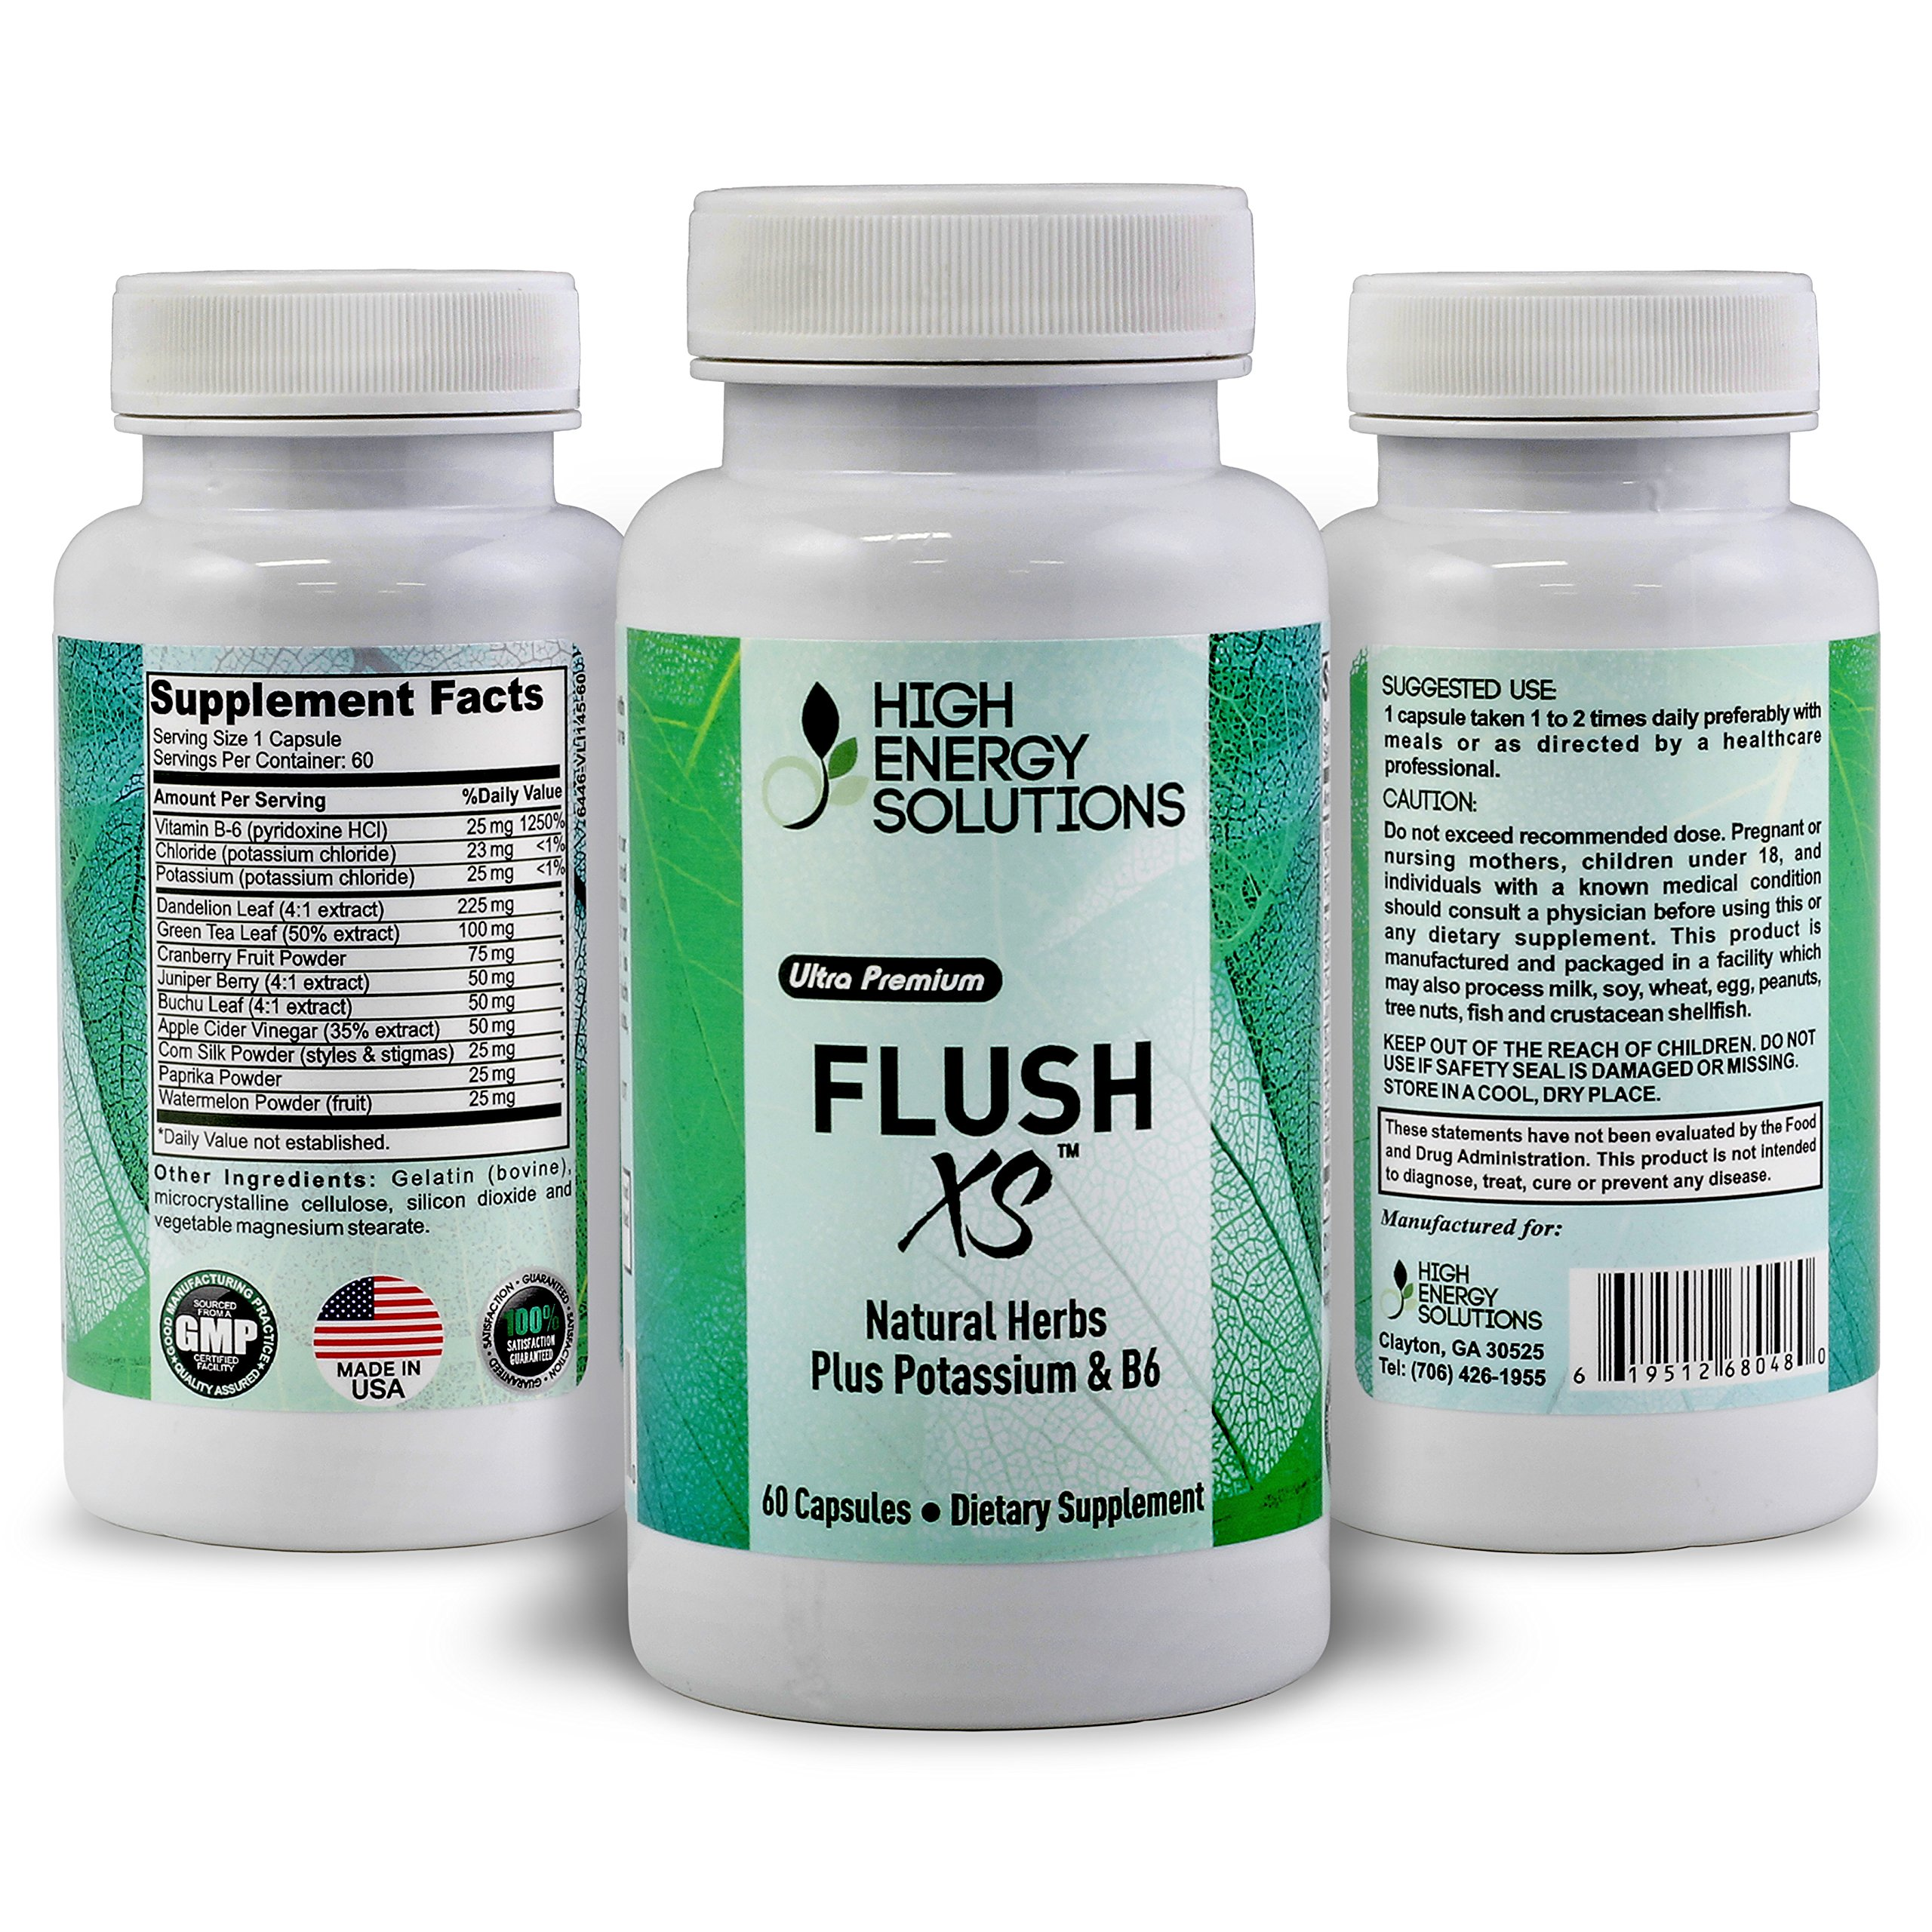 HIGH ENERGY SOLUTIONS FLUSH XS - Potent Diuretic Supplement For Puffy Eyes - Bloating - Swelling - Water Weight Gain - PMS - Edema - 60 Caps - 30 Day's - 'Feel Like Your Old Self Again' USA by HIGH ENERGY SOLUTIONS